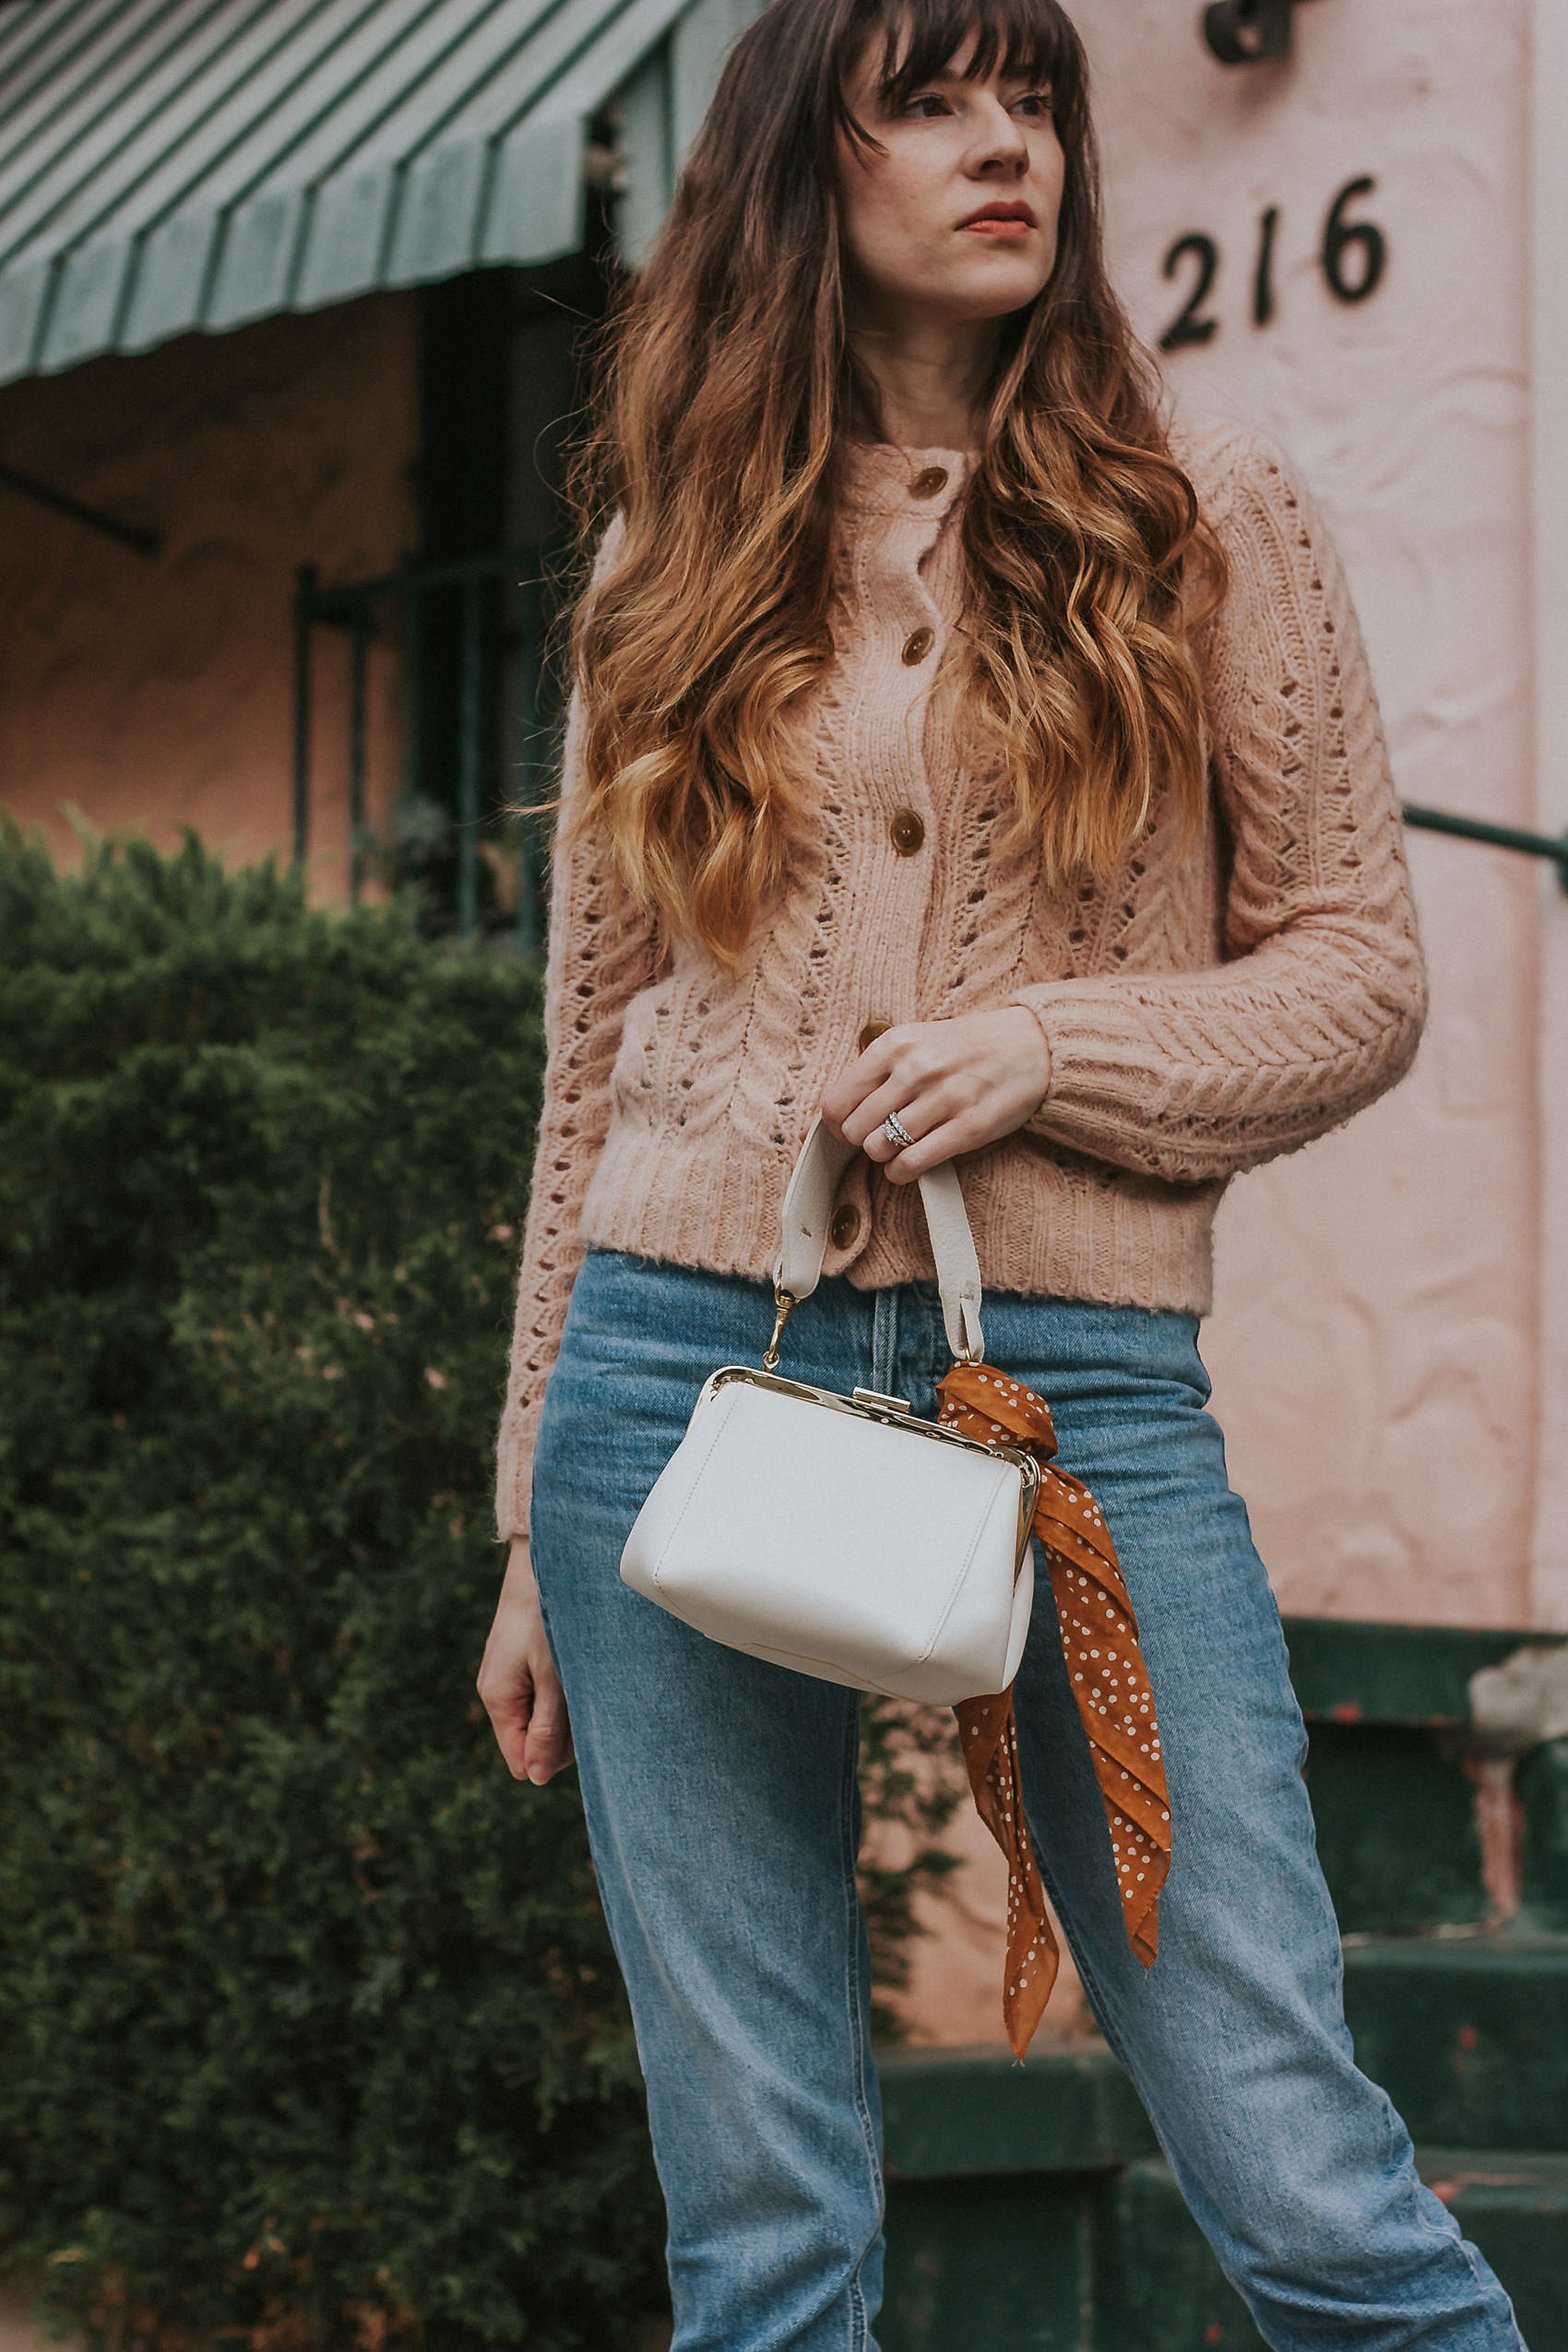 Los Angeles Fashion Blogger showing how to style a scarf on a bag